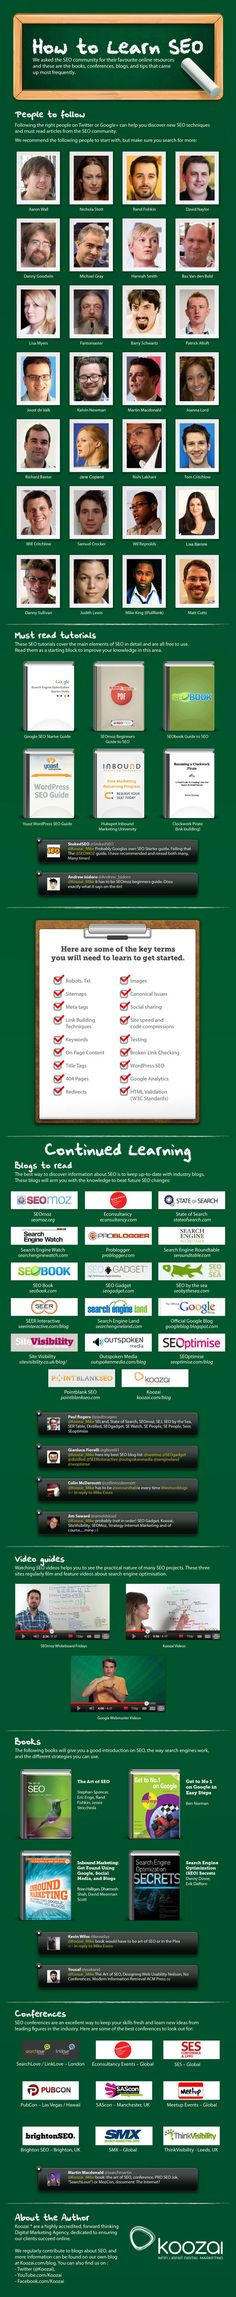 Learning SEO? Here are some tips - State of Search